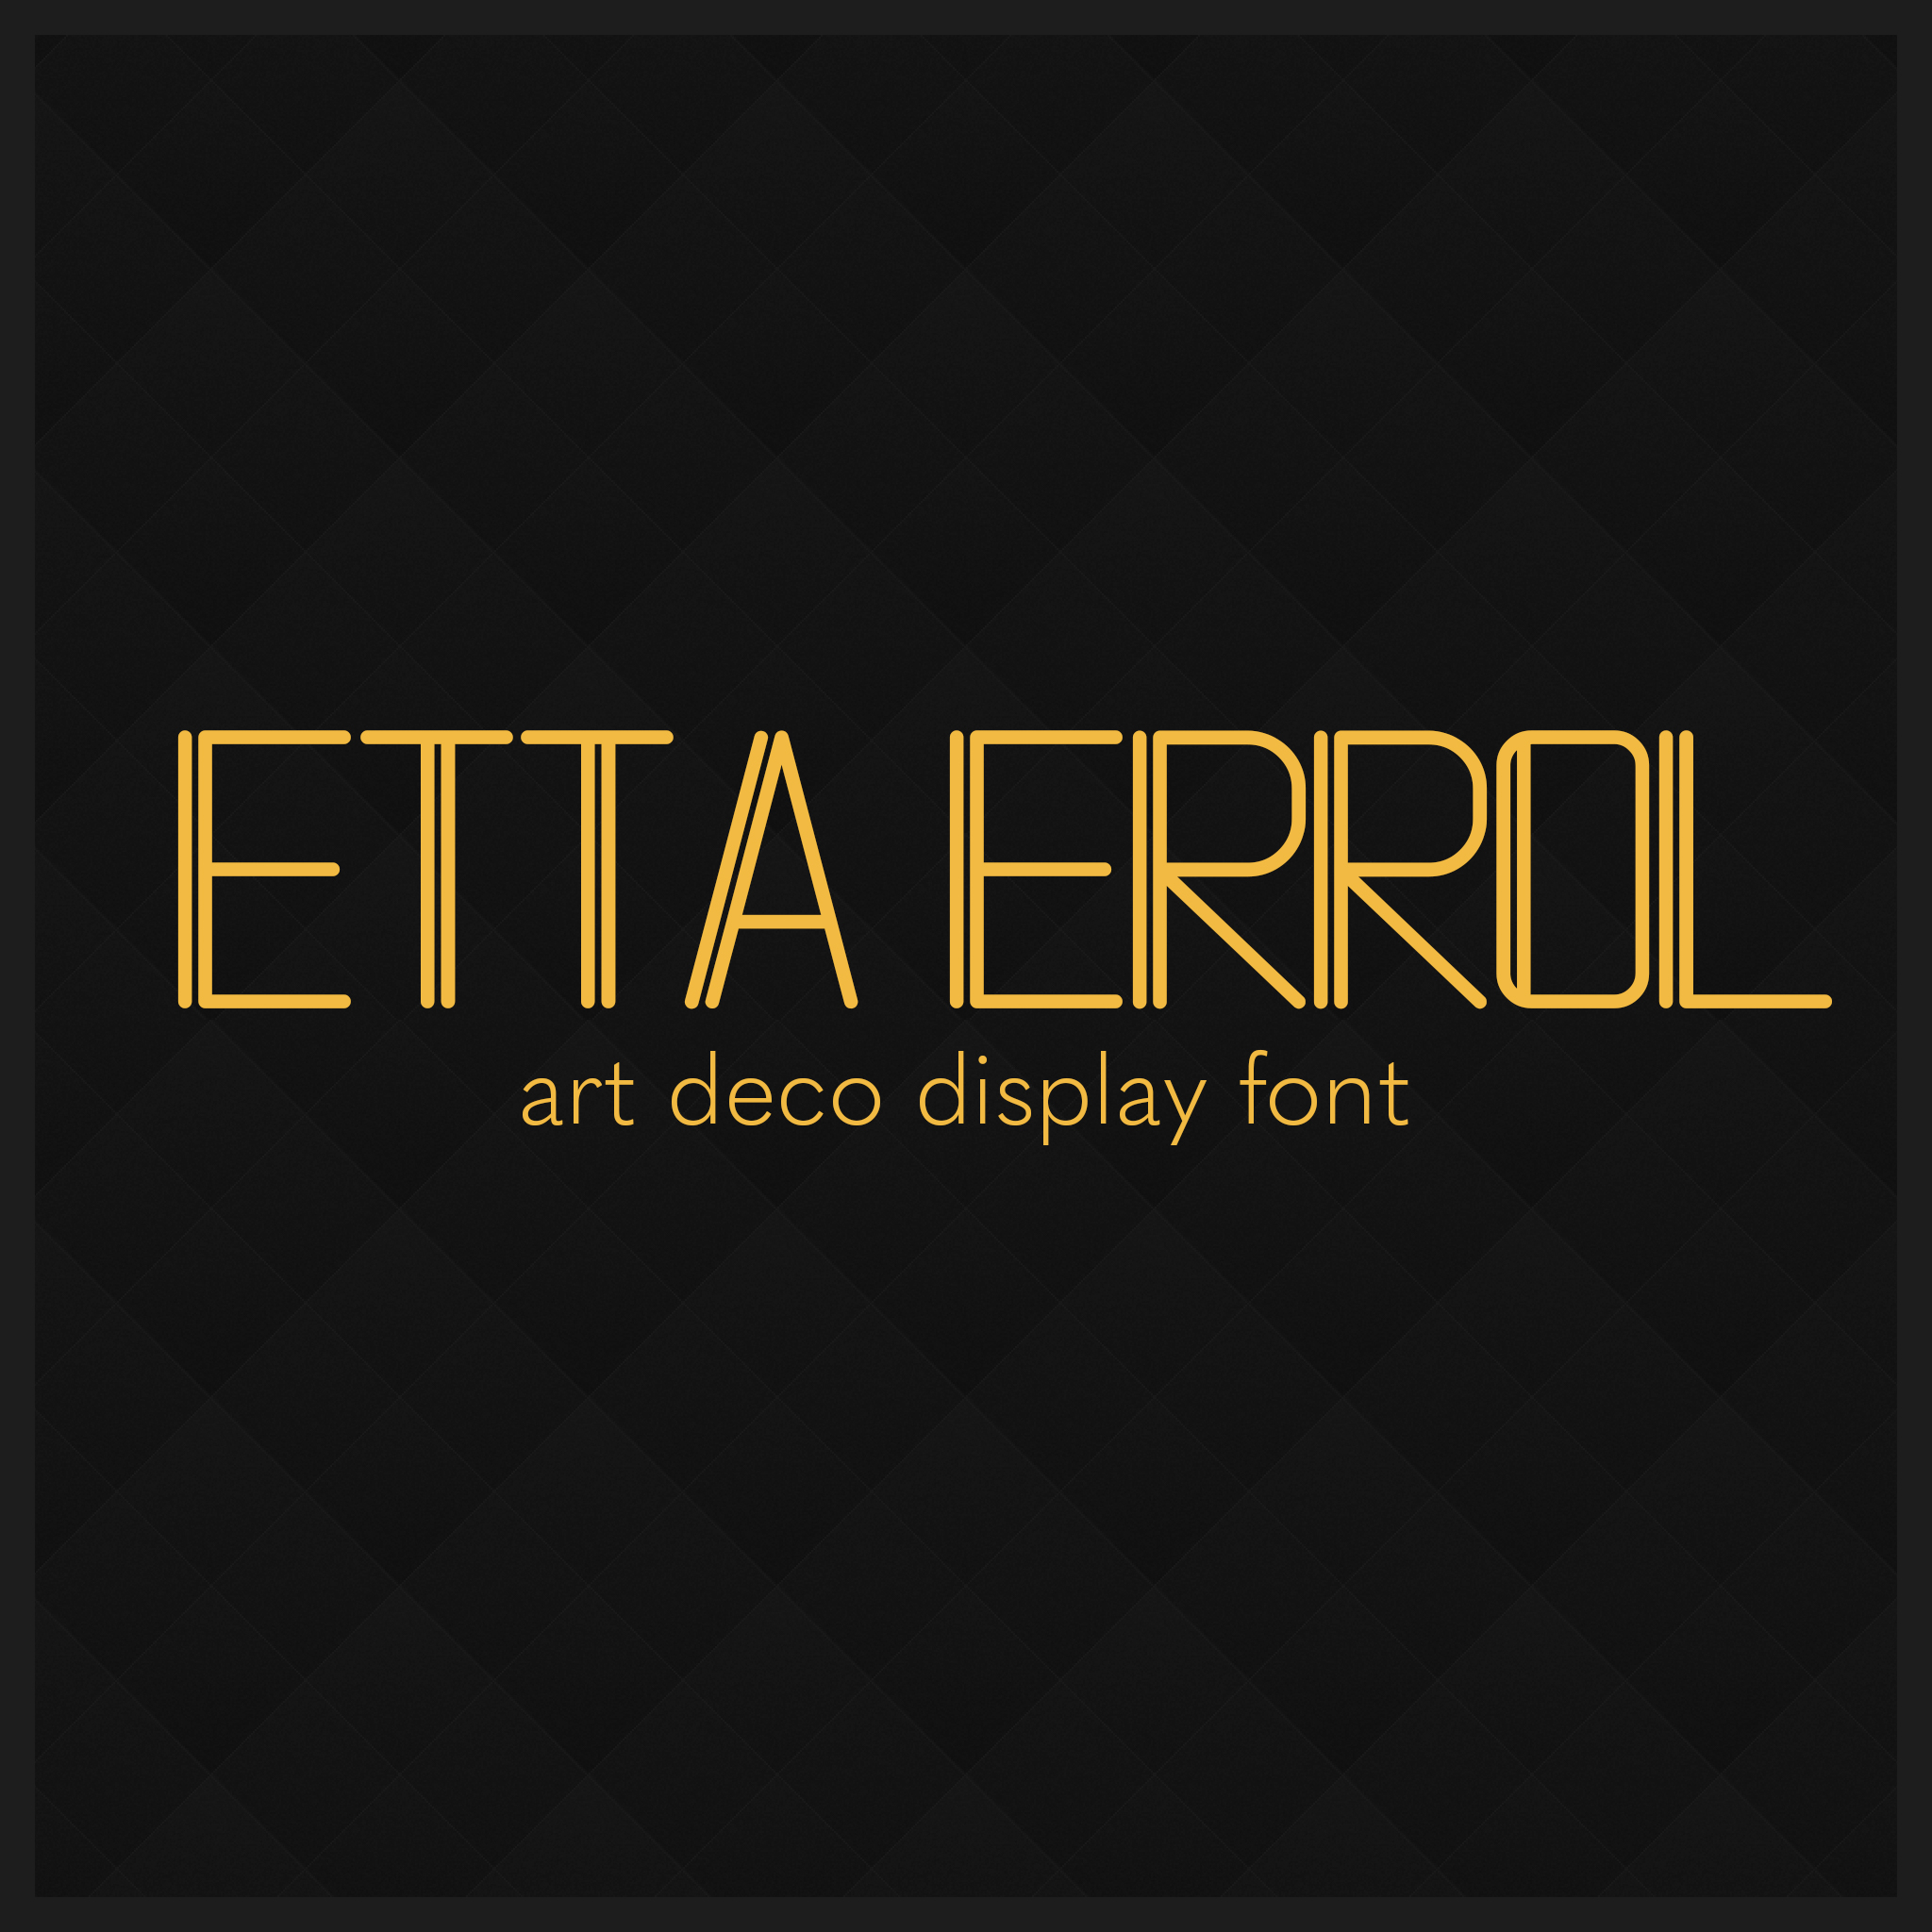 Etta Errol Font Sample